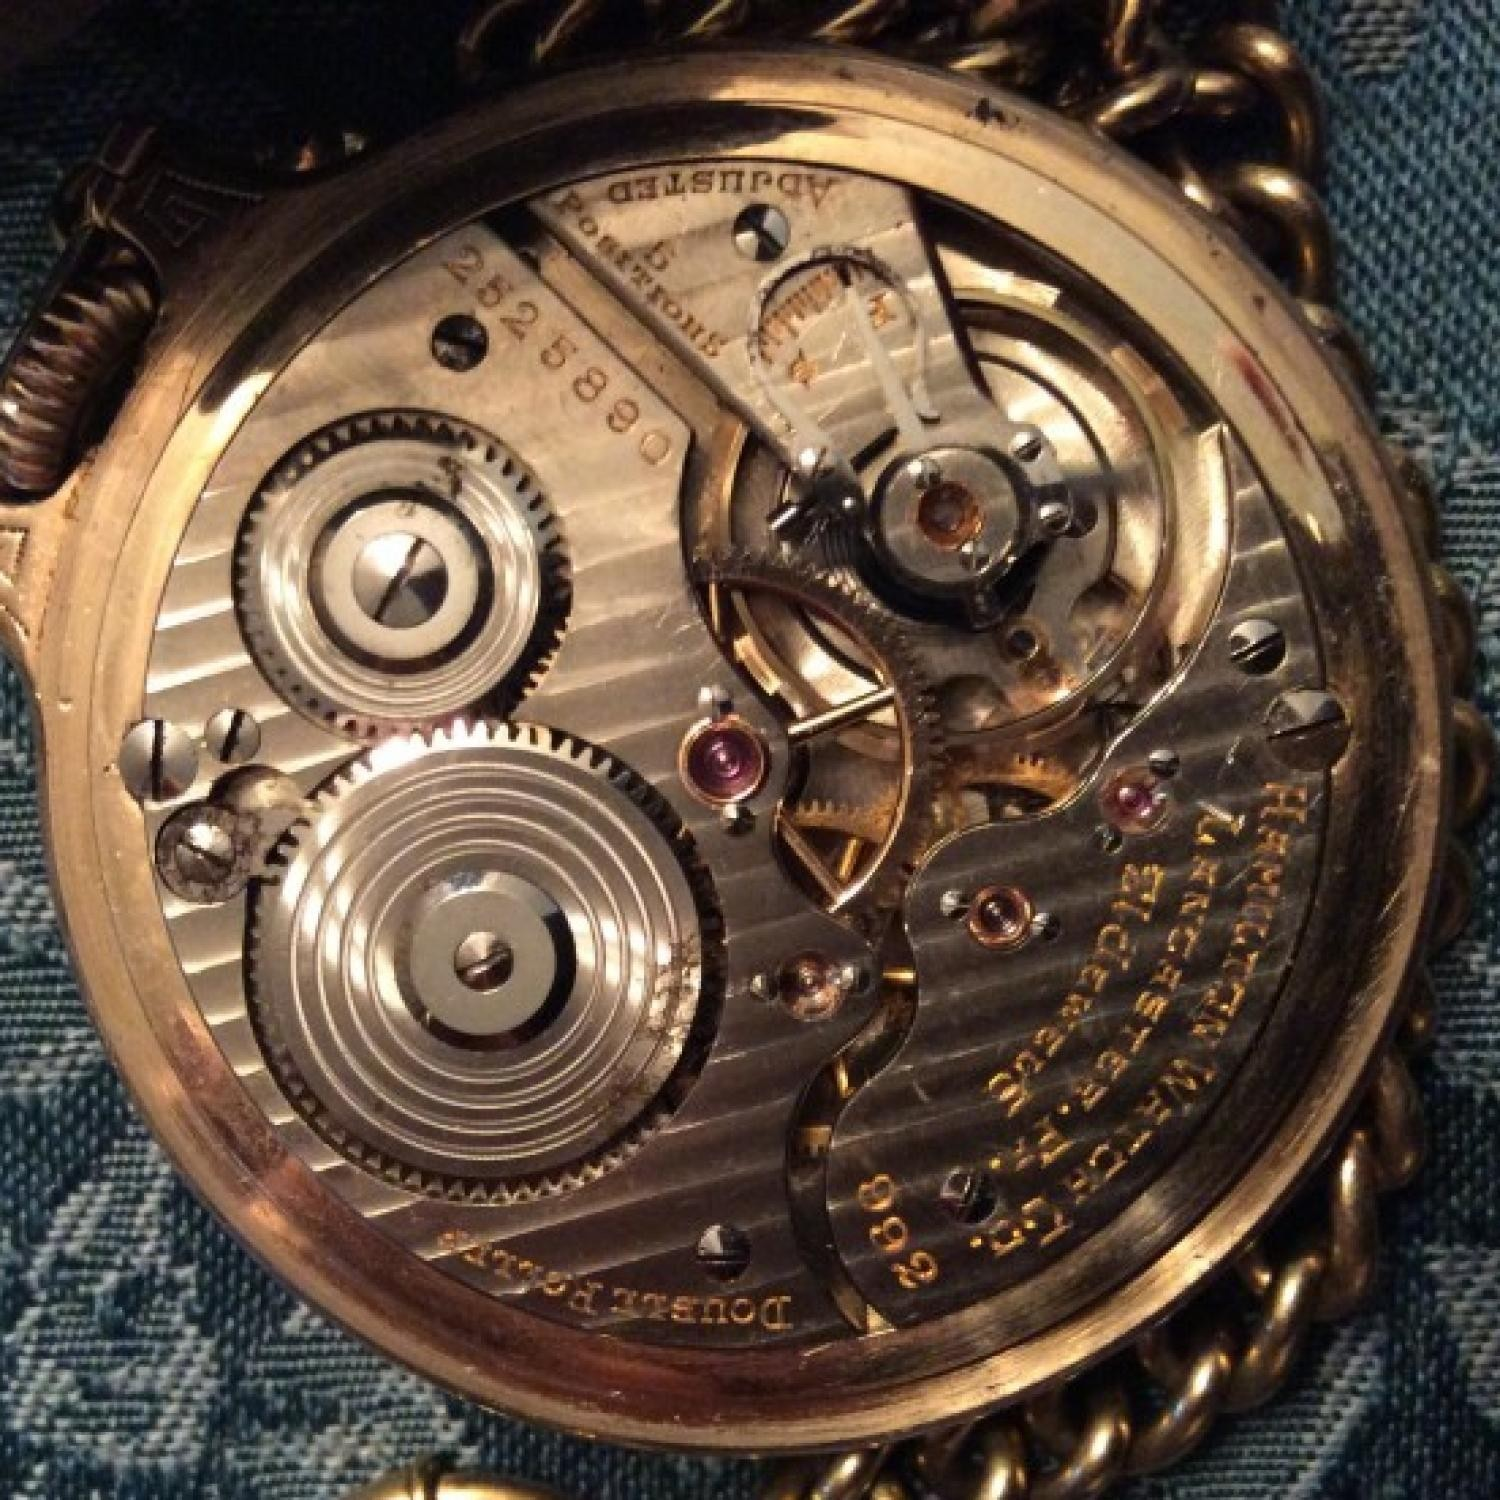 Image of Hamilton 992 #2525890 Movement